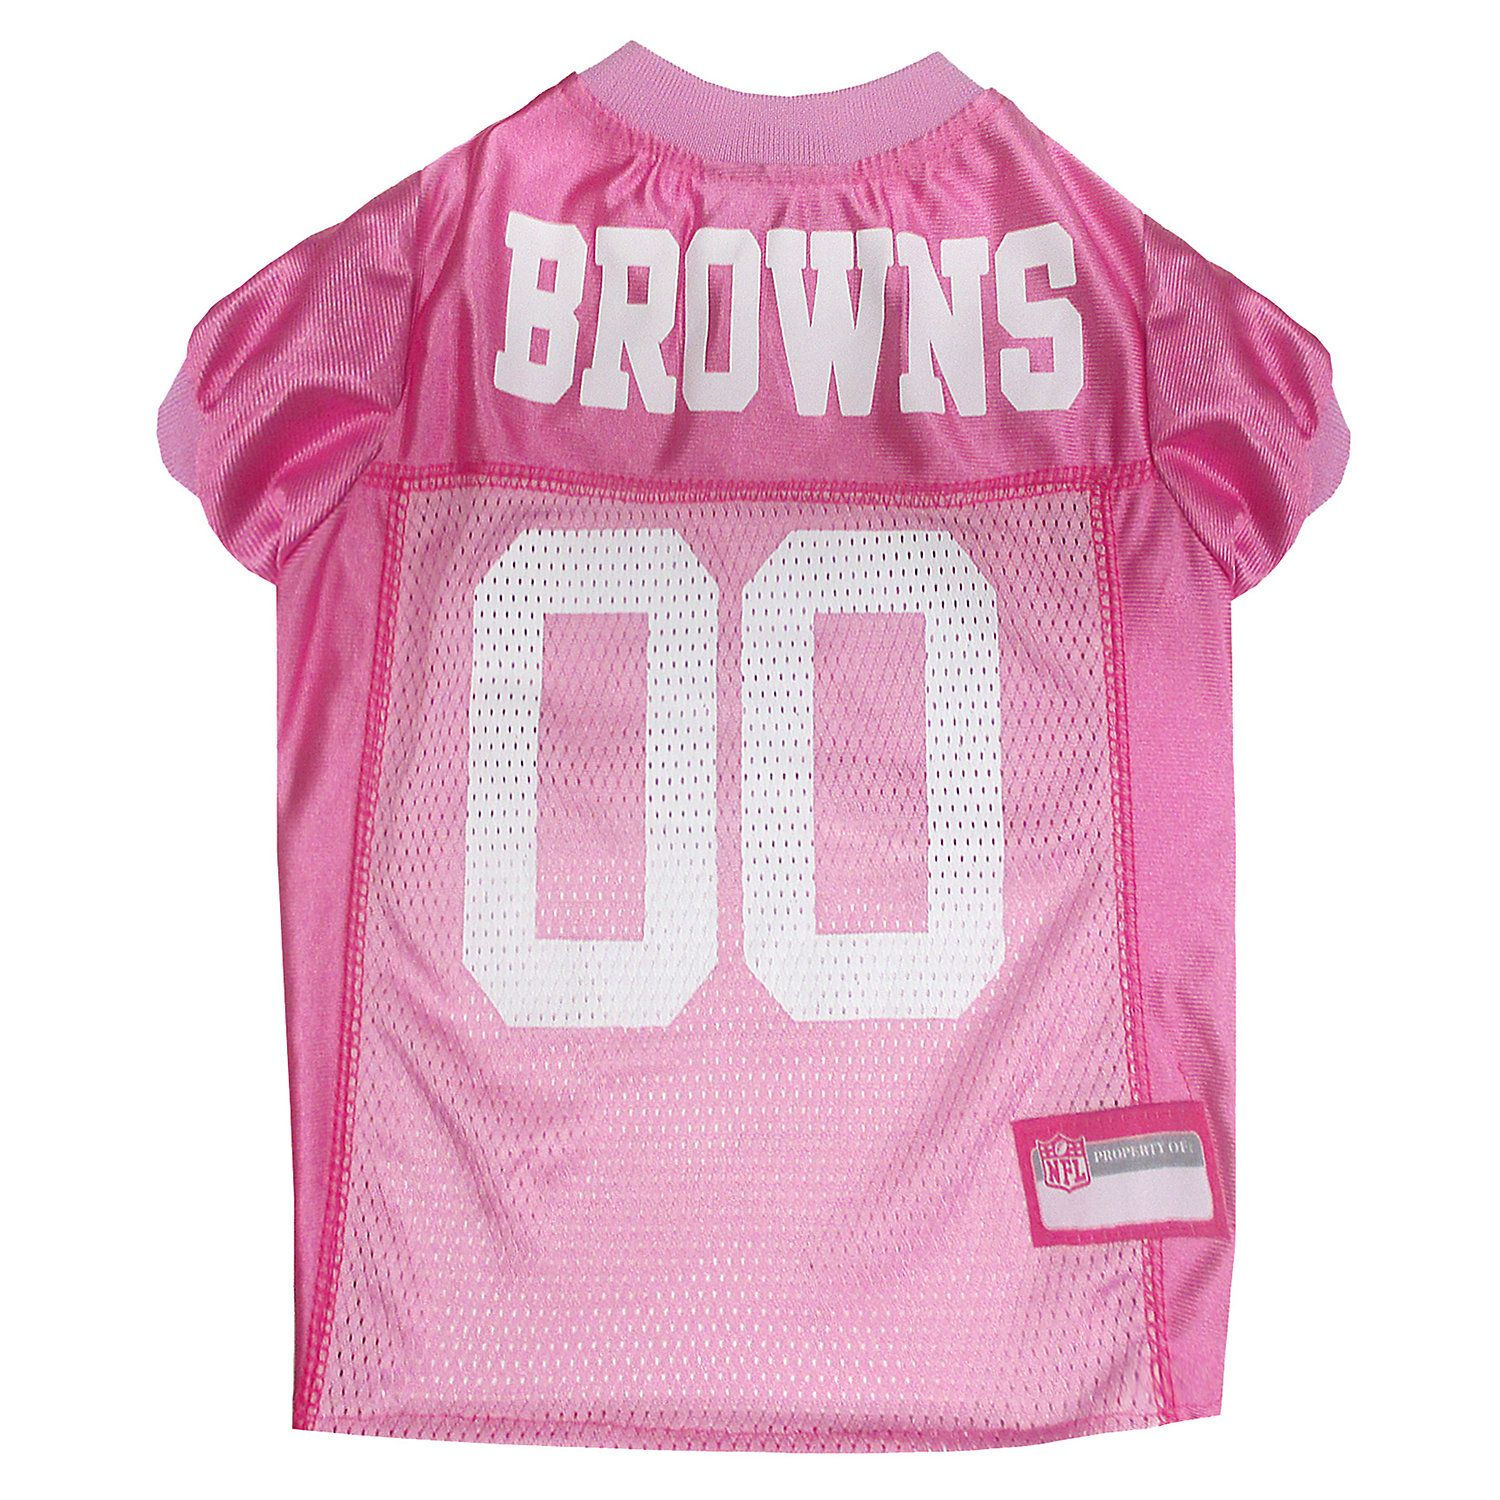 Pets First Cleveland Browns NFL Pink Mesh Jersey, XSmall